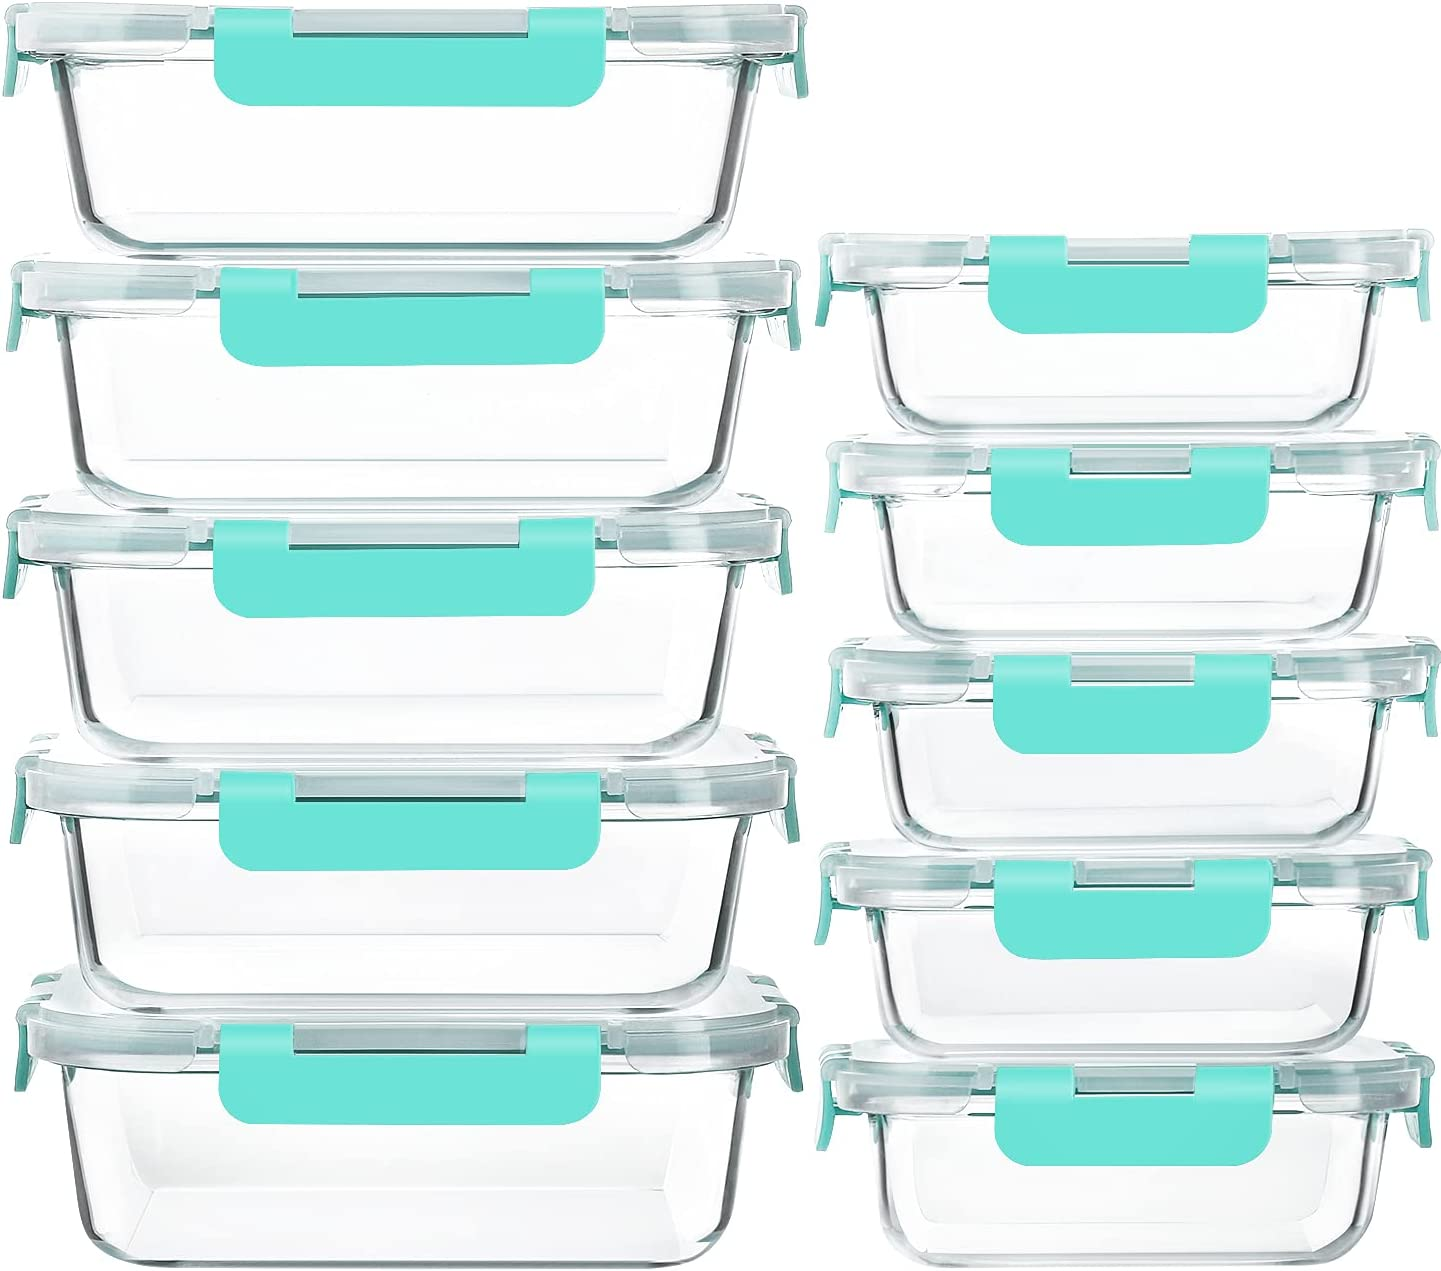 [10-Pack]Glass Meal Prep Containers with Lids-MCIRCO Glass Food Storage Containers with Lifetime Lasting Snap Locking Lids, Airtight Lunch Containers, Microwave, Oven, Freezer and Dishwasher, Green